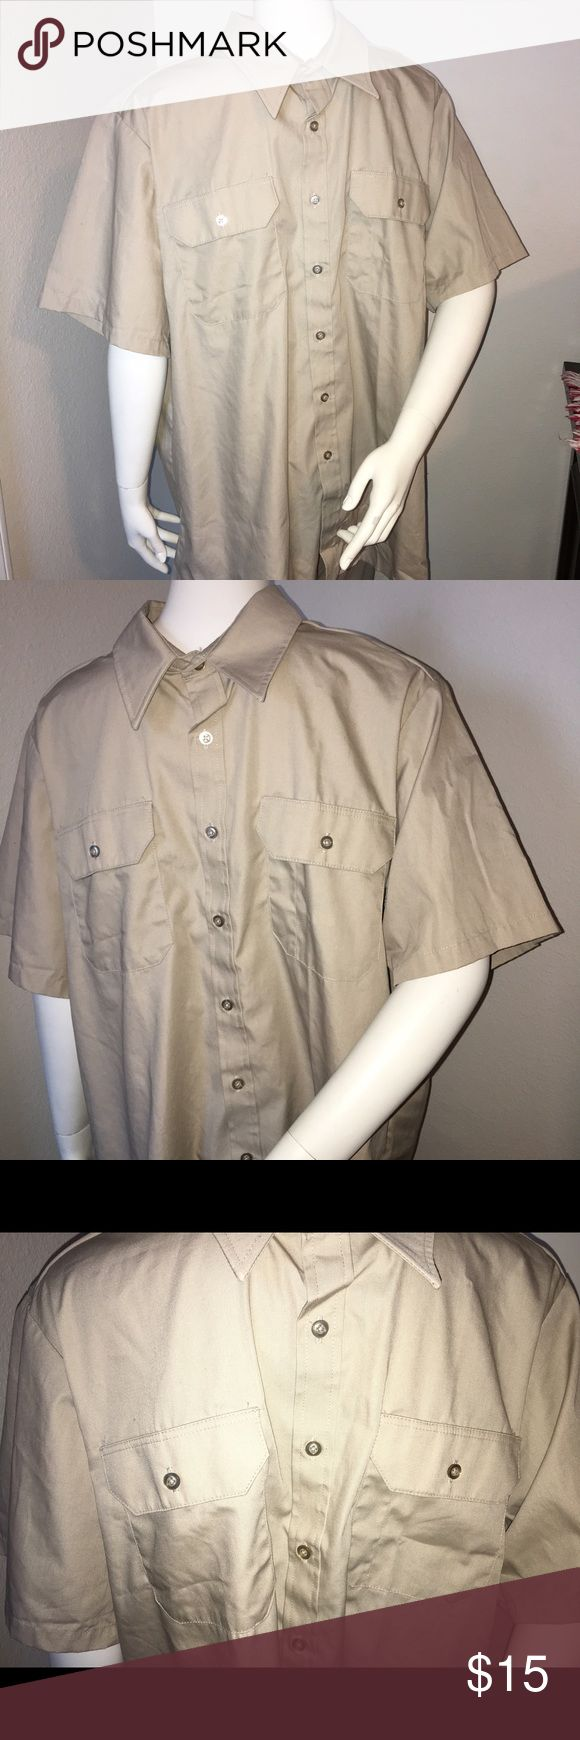 "martins superior uniform light khaki shirt NWOT Thank you for viewing my listing, for sale is hey Martin's uniform brand, light khaki, short sleeve, button-down uniform work shirt.  NWOT SZ: 17 1/2 From under one arm to under the other measures appx 27"" from the top of the shoulder to the bottom of the shirt measures appx 33"" martin's superior uniform Shirts Dress Shirts"